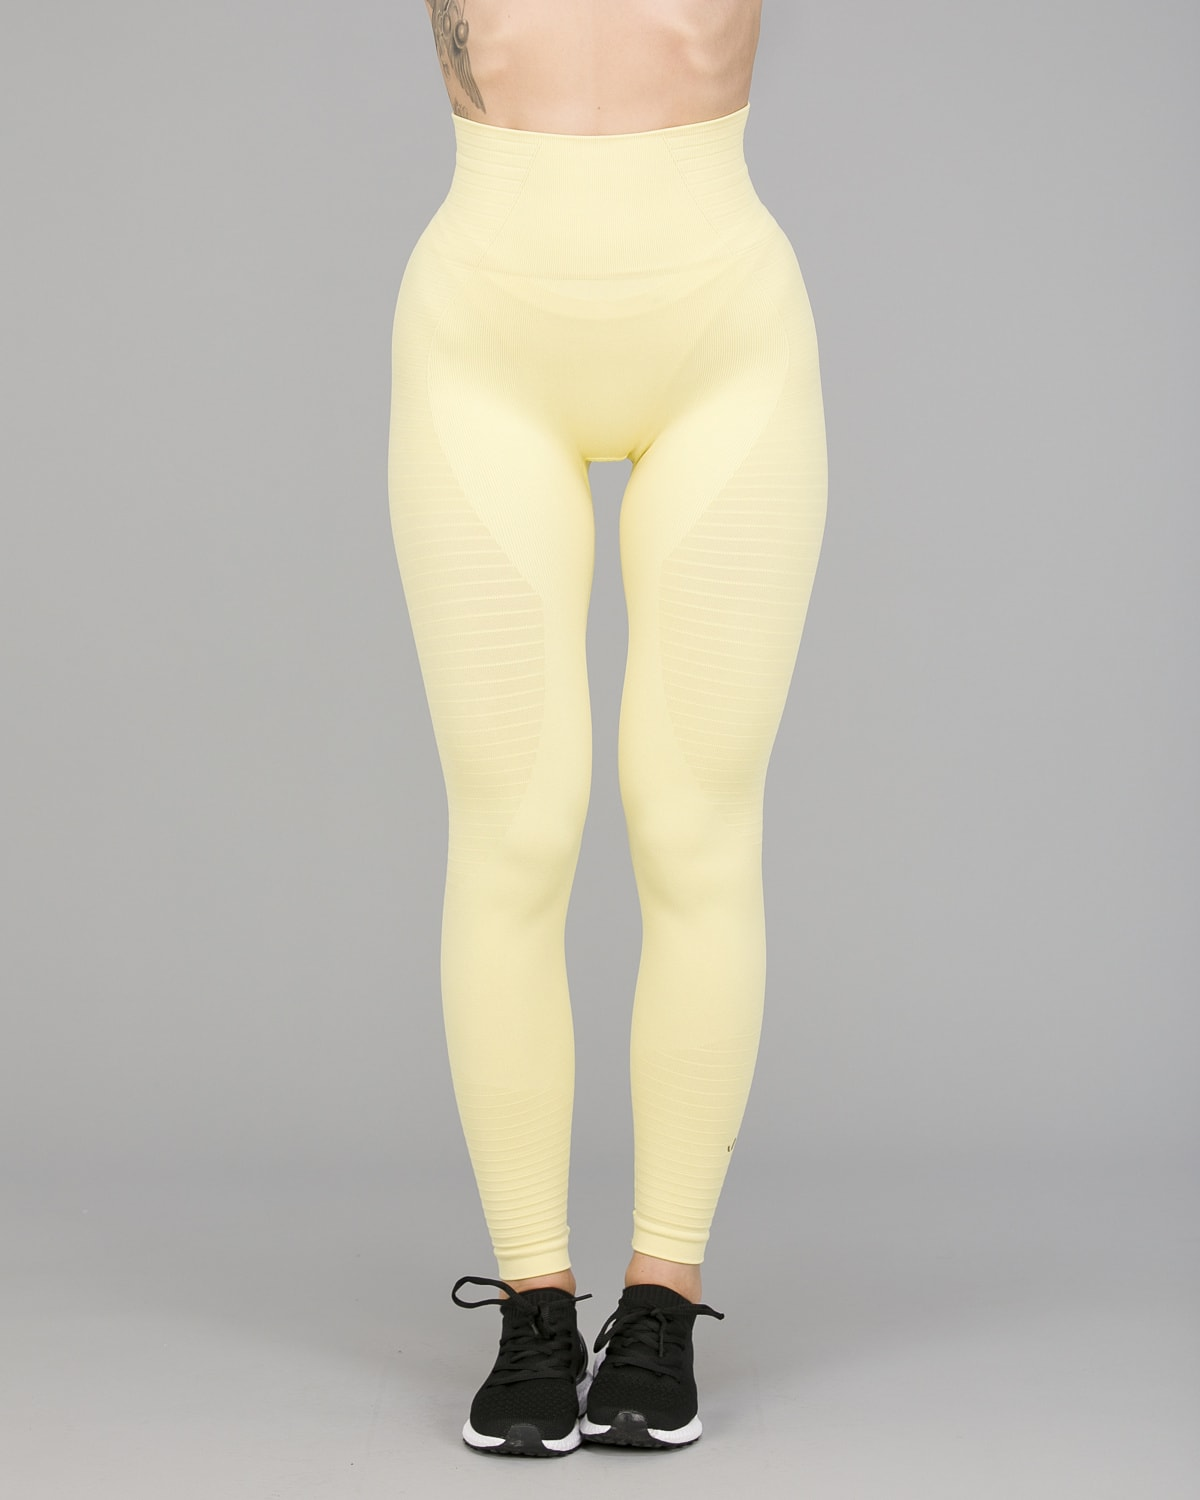 Jerf Gela 2.0 Tights Yellow Pastel10